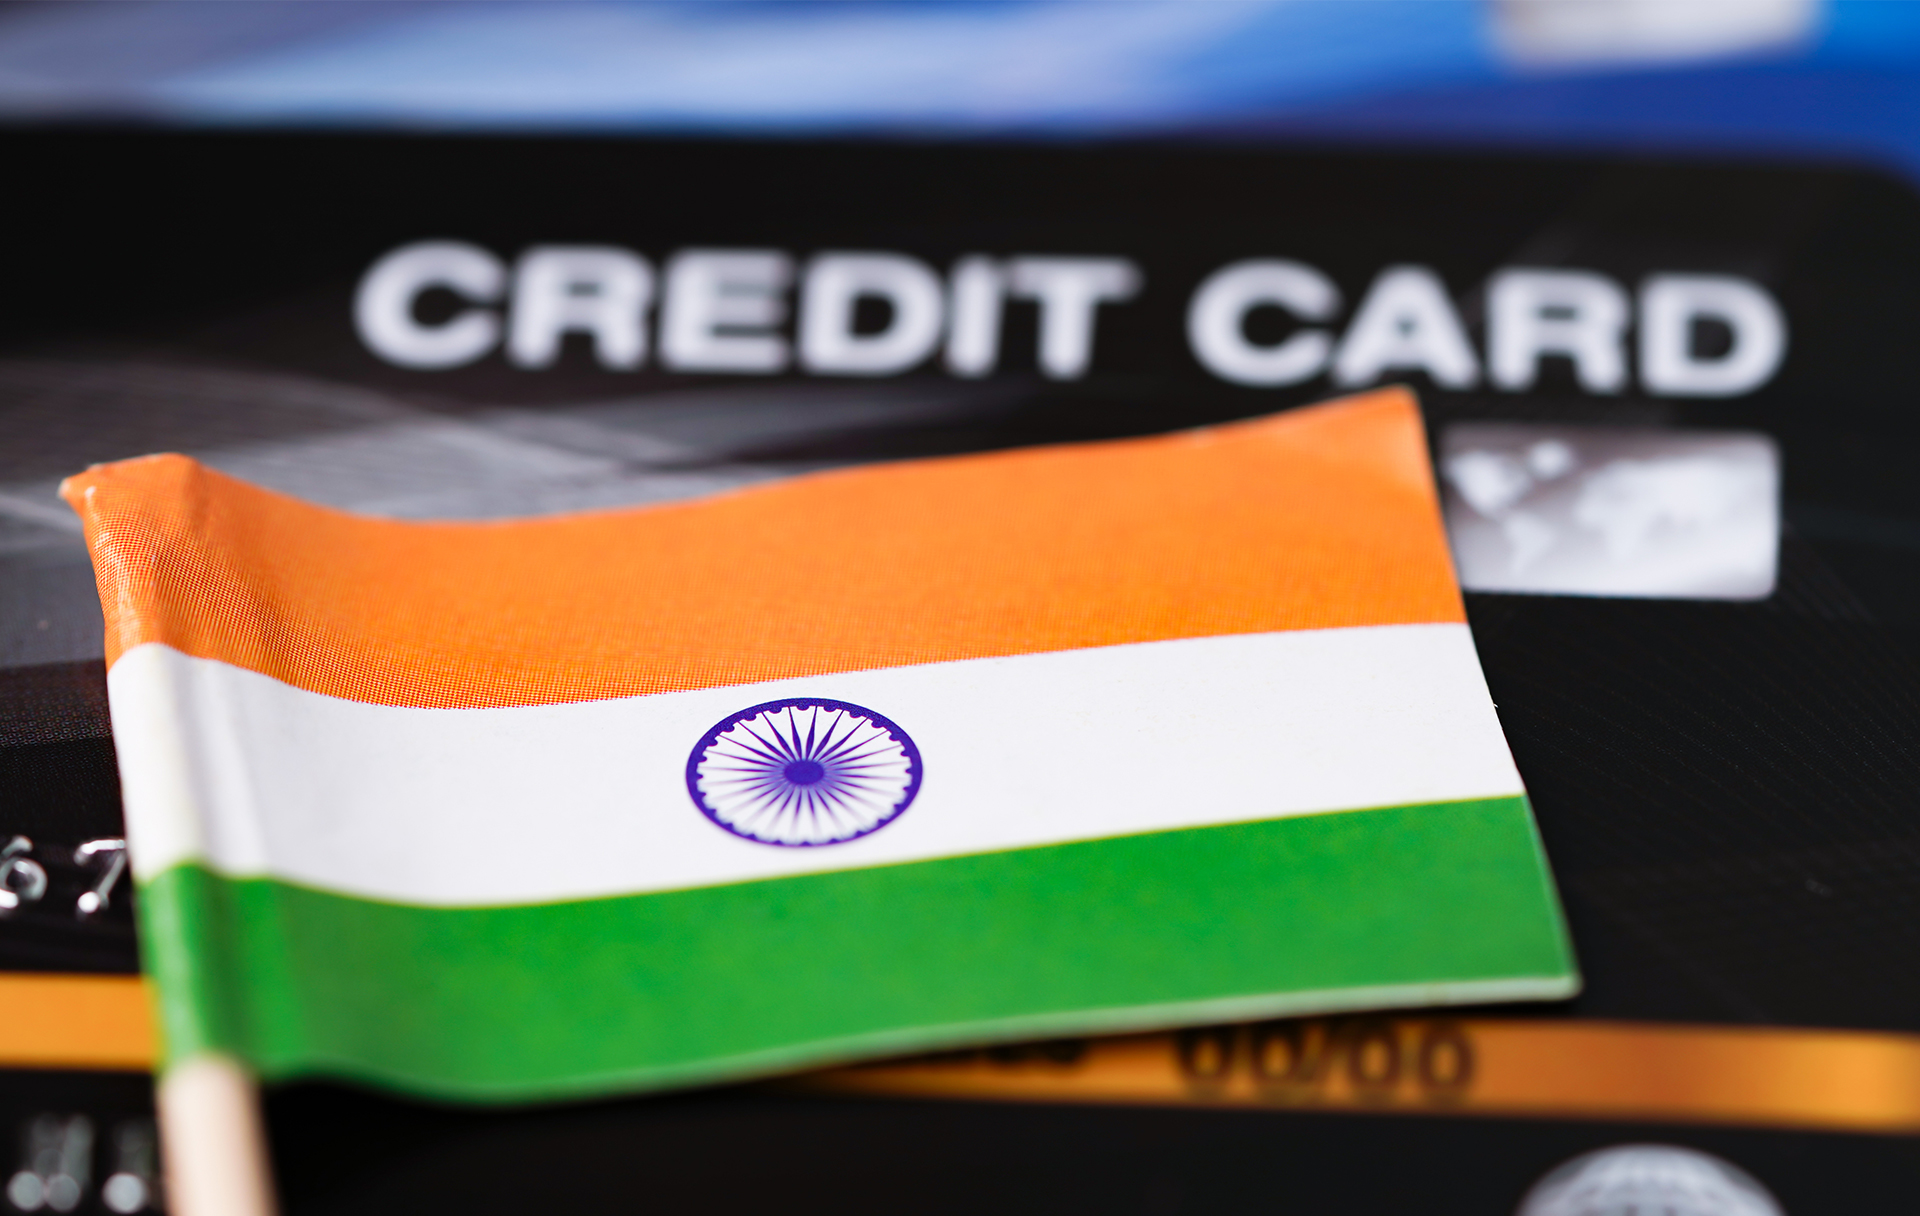 There are all the payment systems that are popular in India.